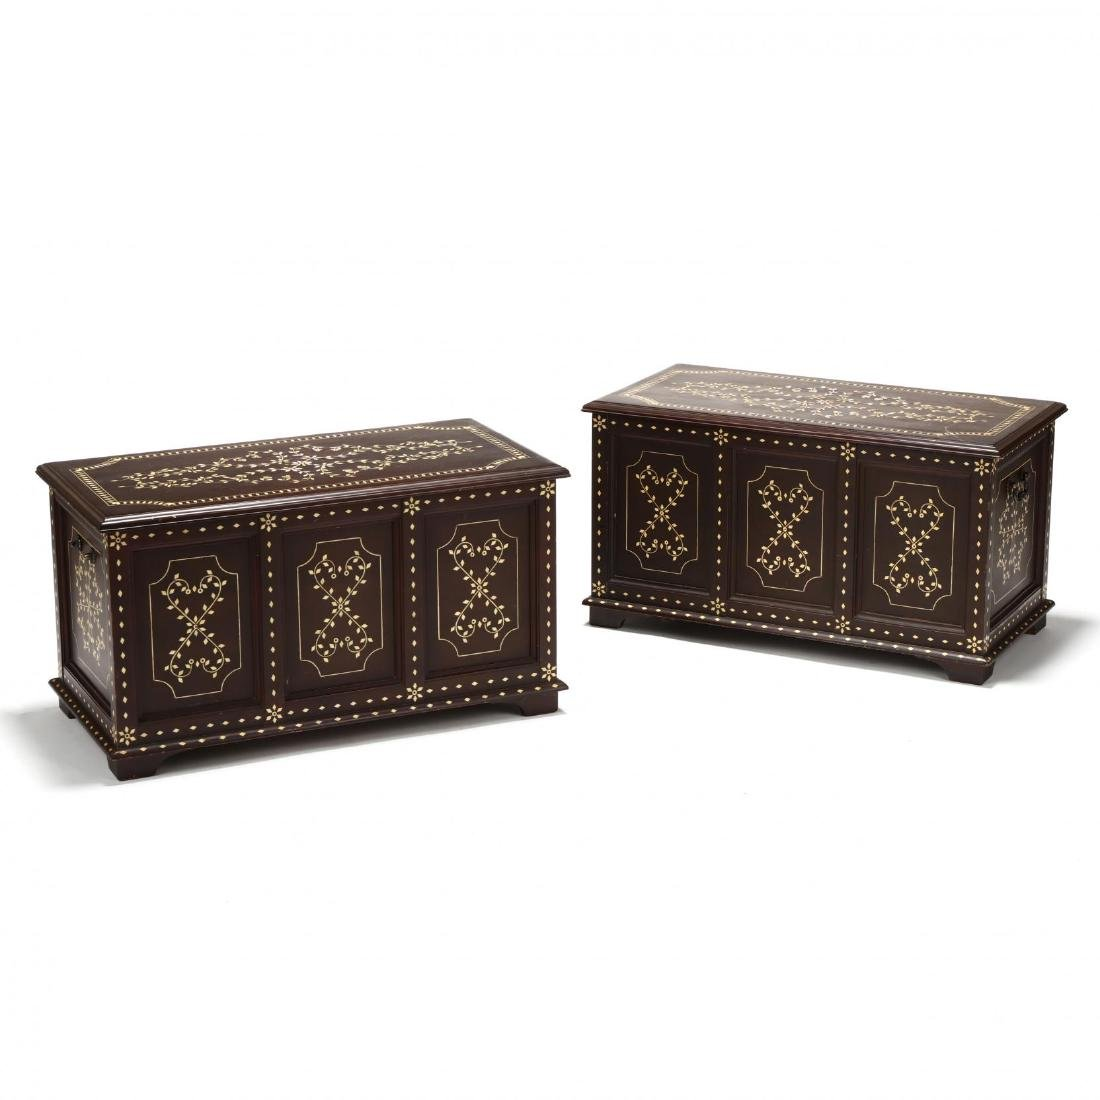 Pair of Anglo Indian Inlaid Diminutive Blanket Chests